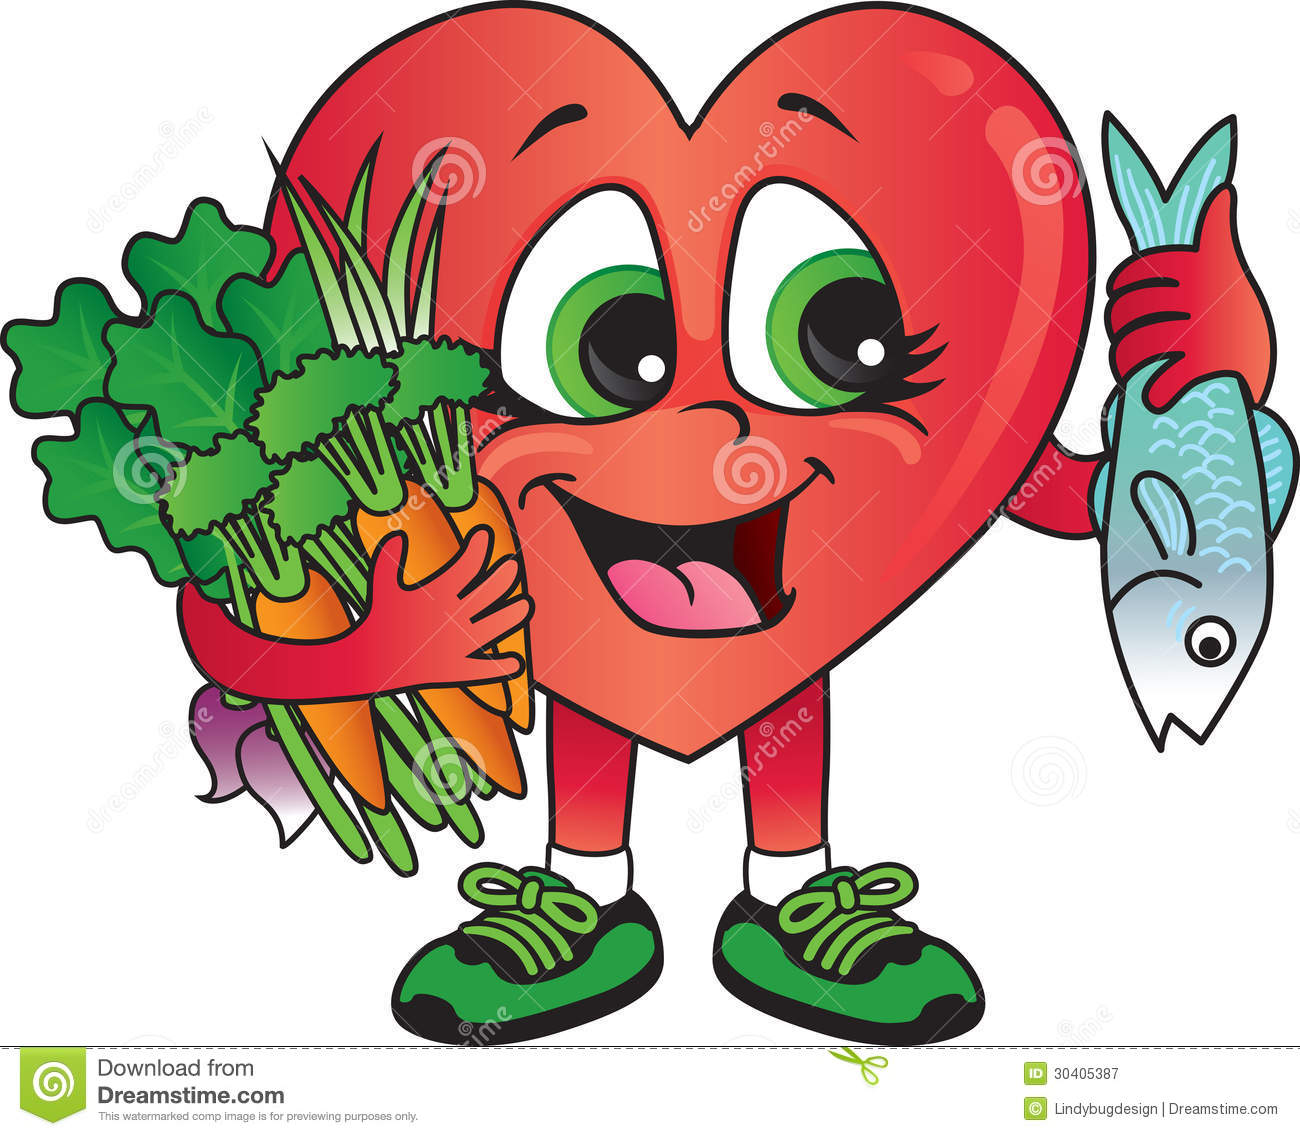 eat healthy clipart free download best eat healthy healthy eating clipart for kids healthy eatting clipart